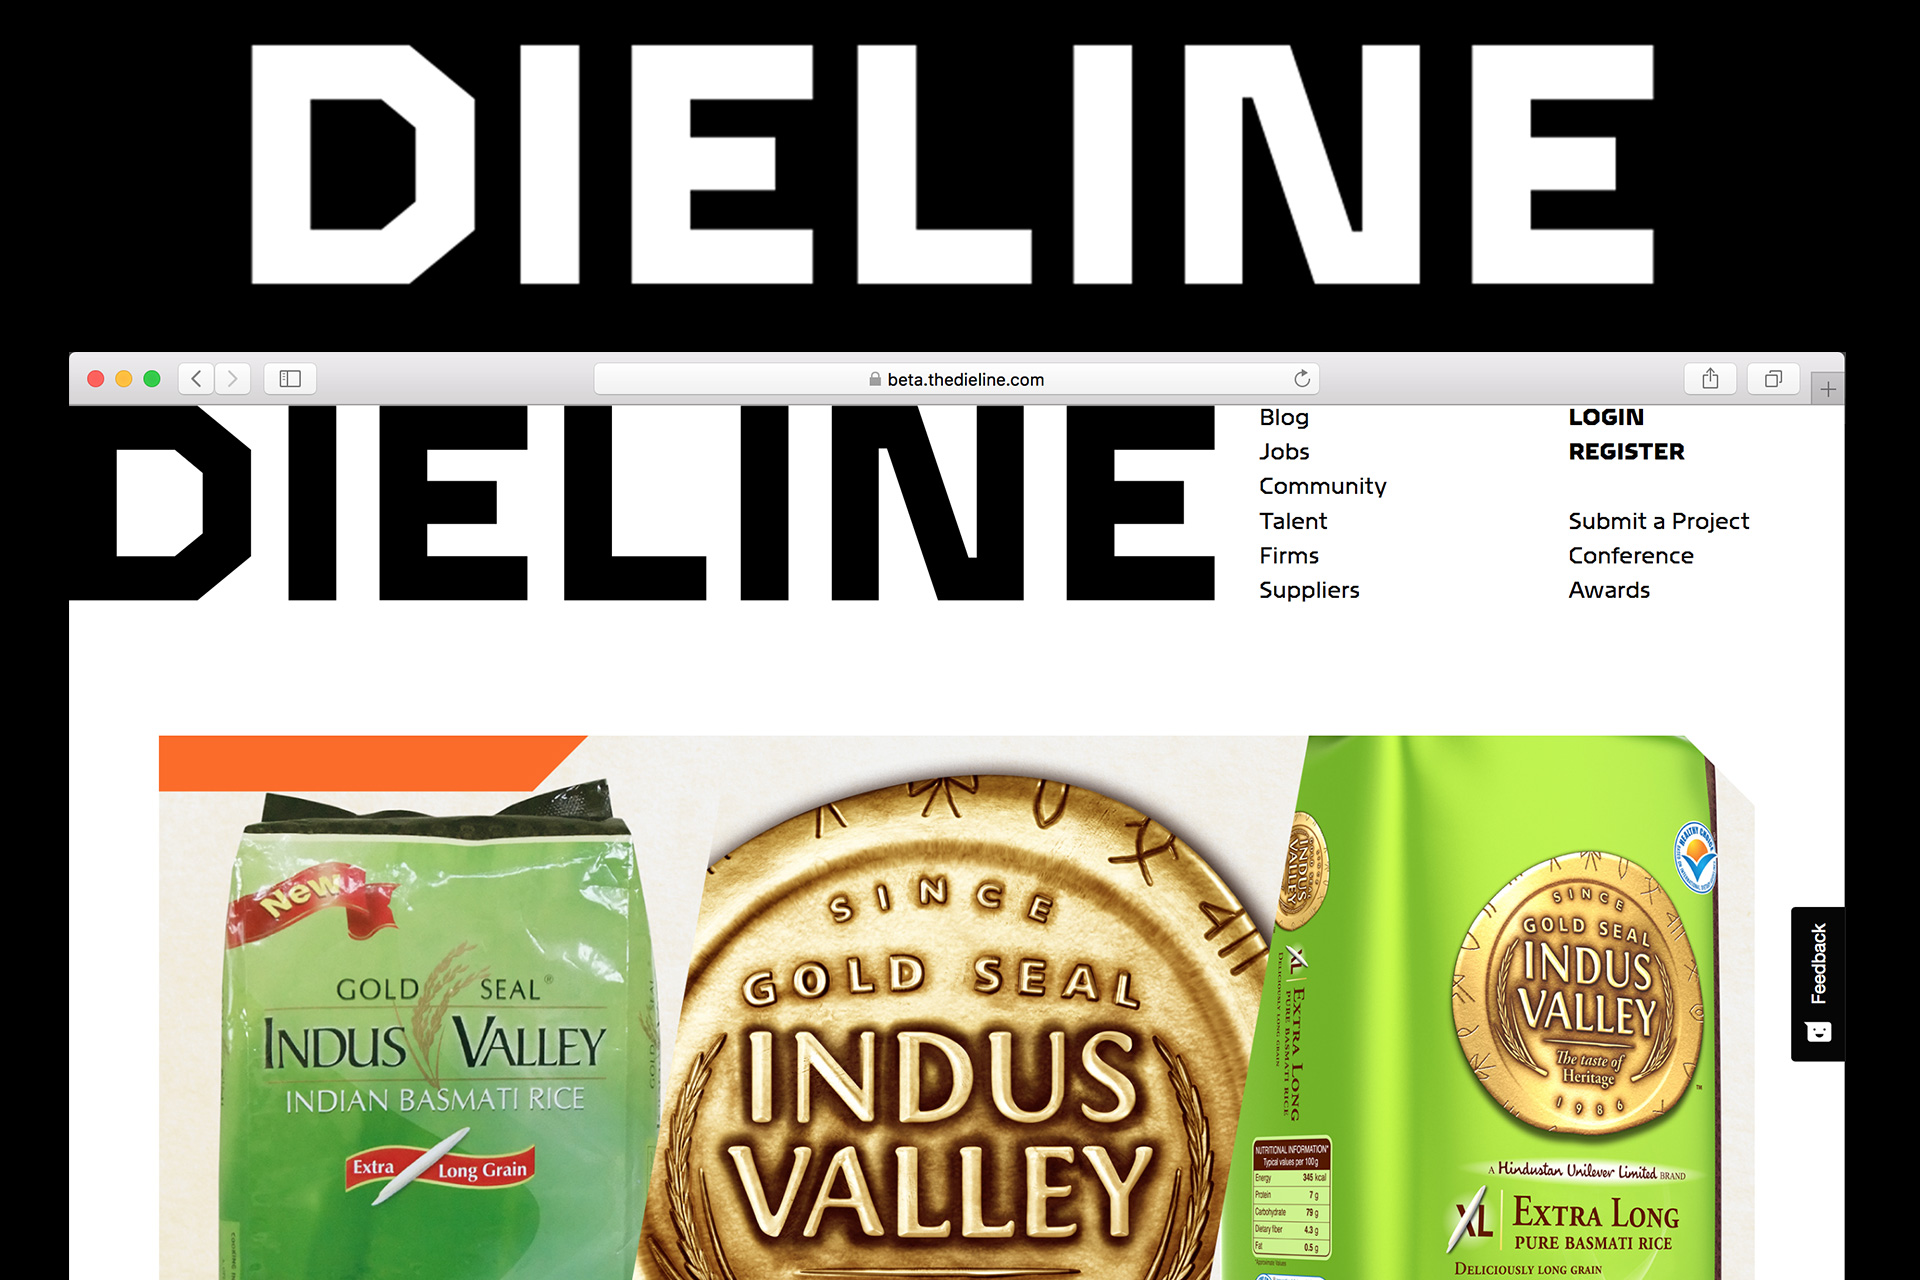 Dieline Featuring Gold Seal Indus Valley